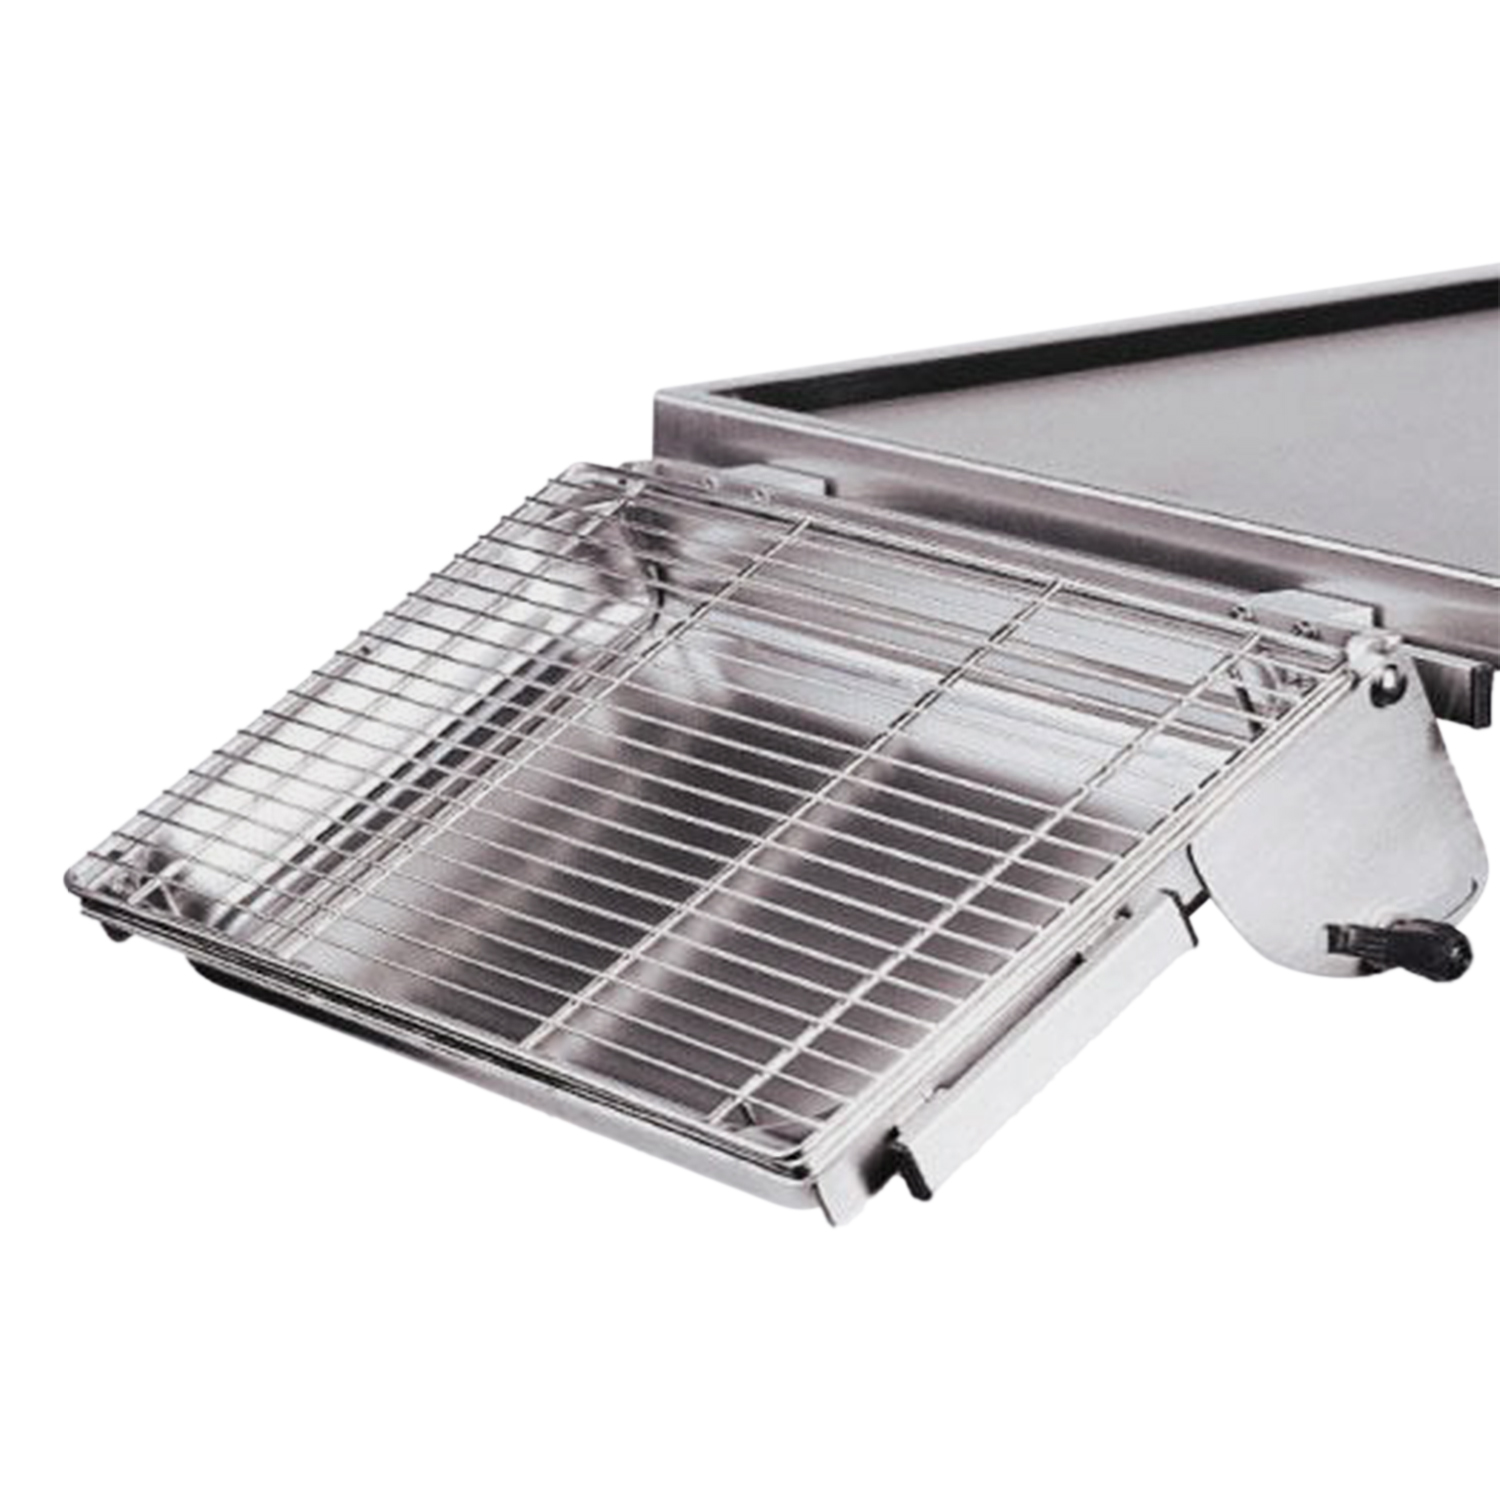 Tilting Stainless Steel Dish with Grid